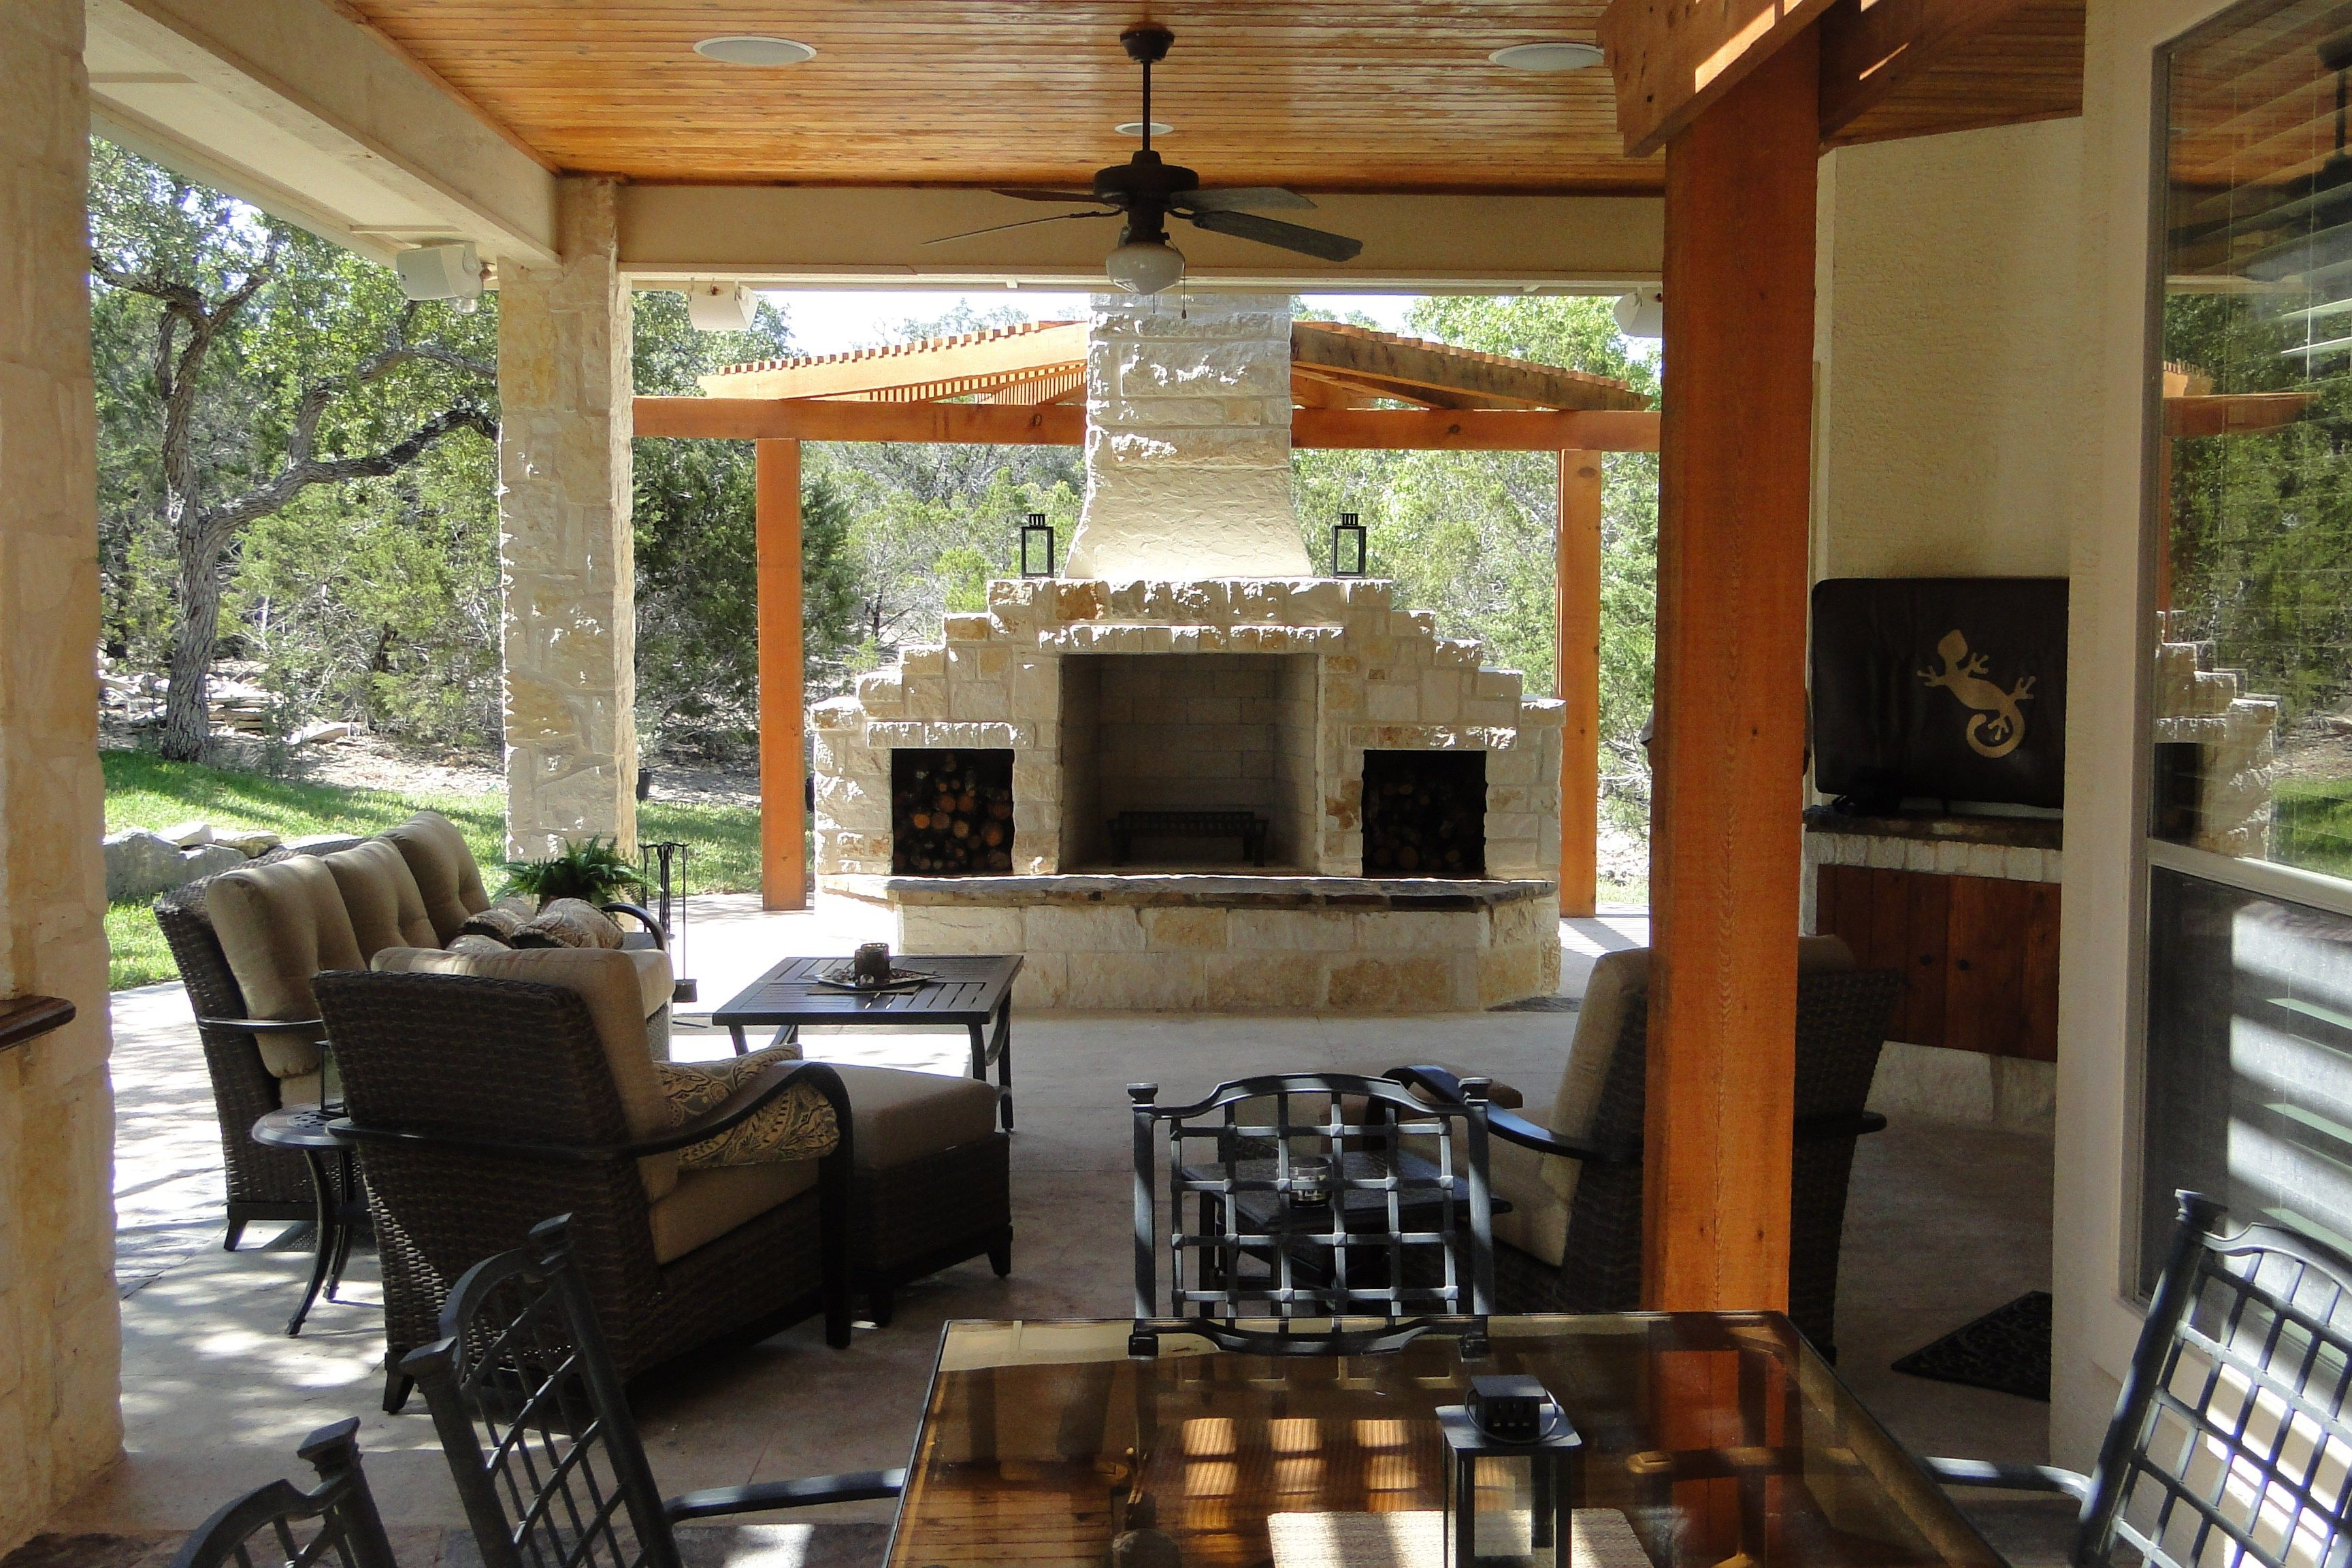 Like The Fireplace Could Live Out Here Outdoor Living Space Fireplace Outdoor Living Space Patio Kitchen